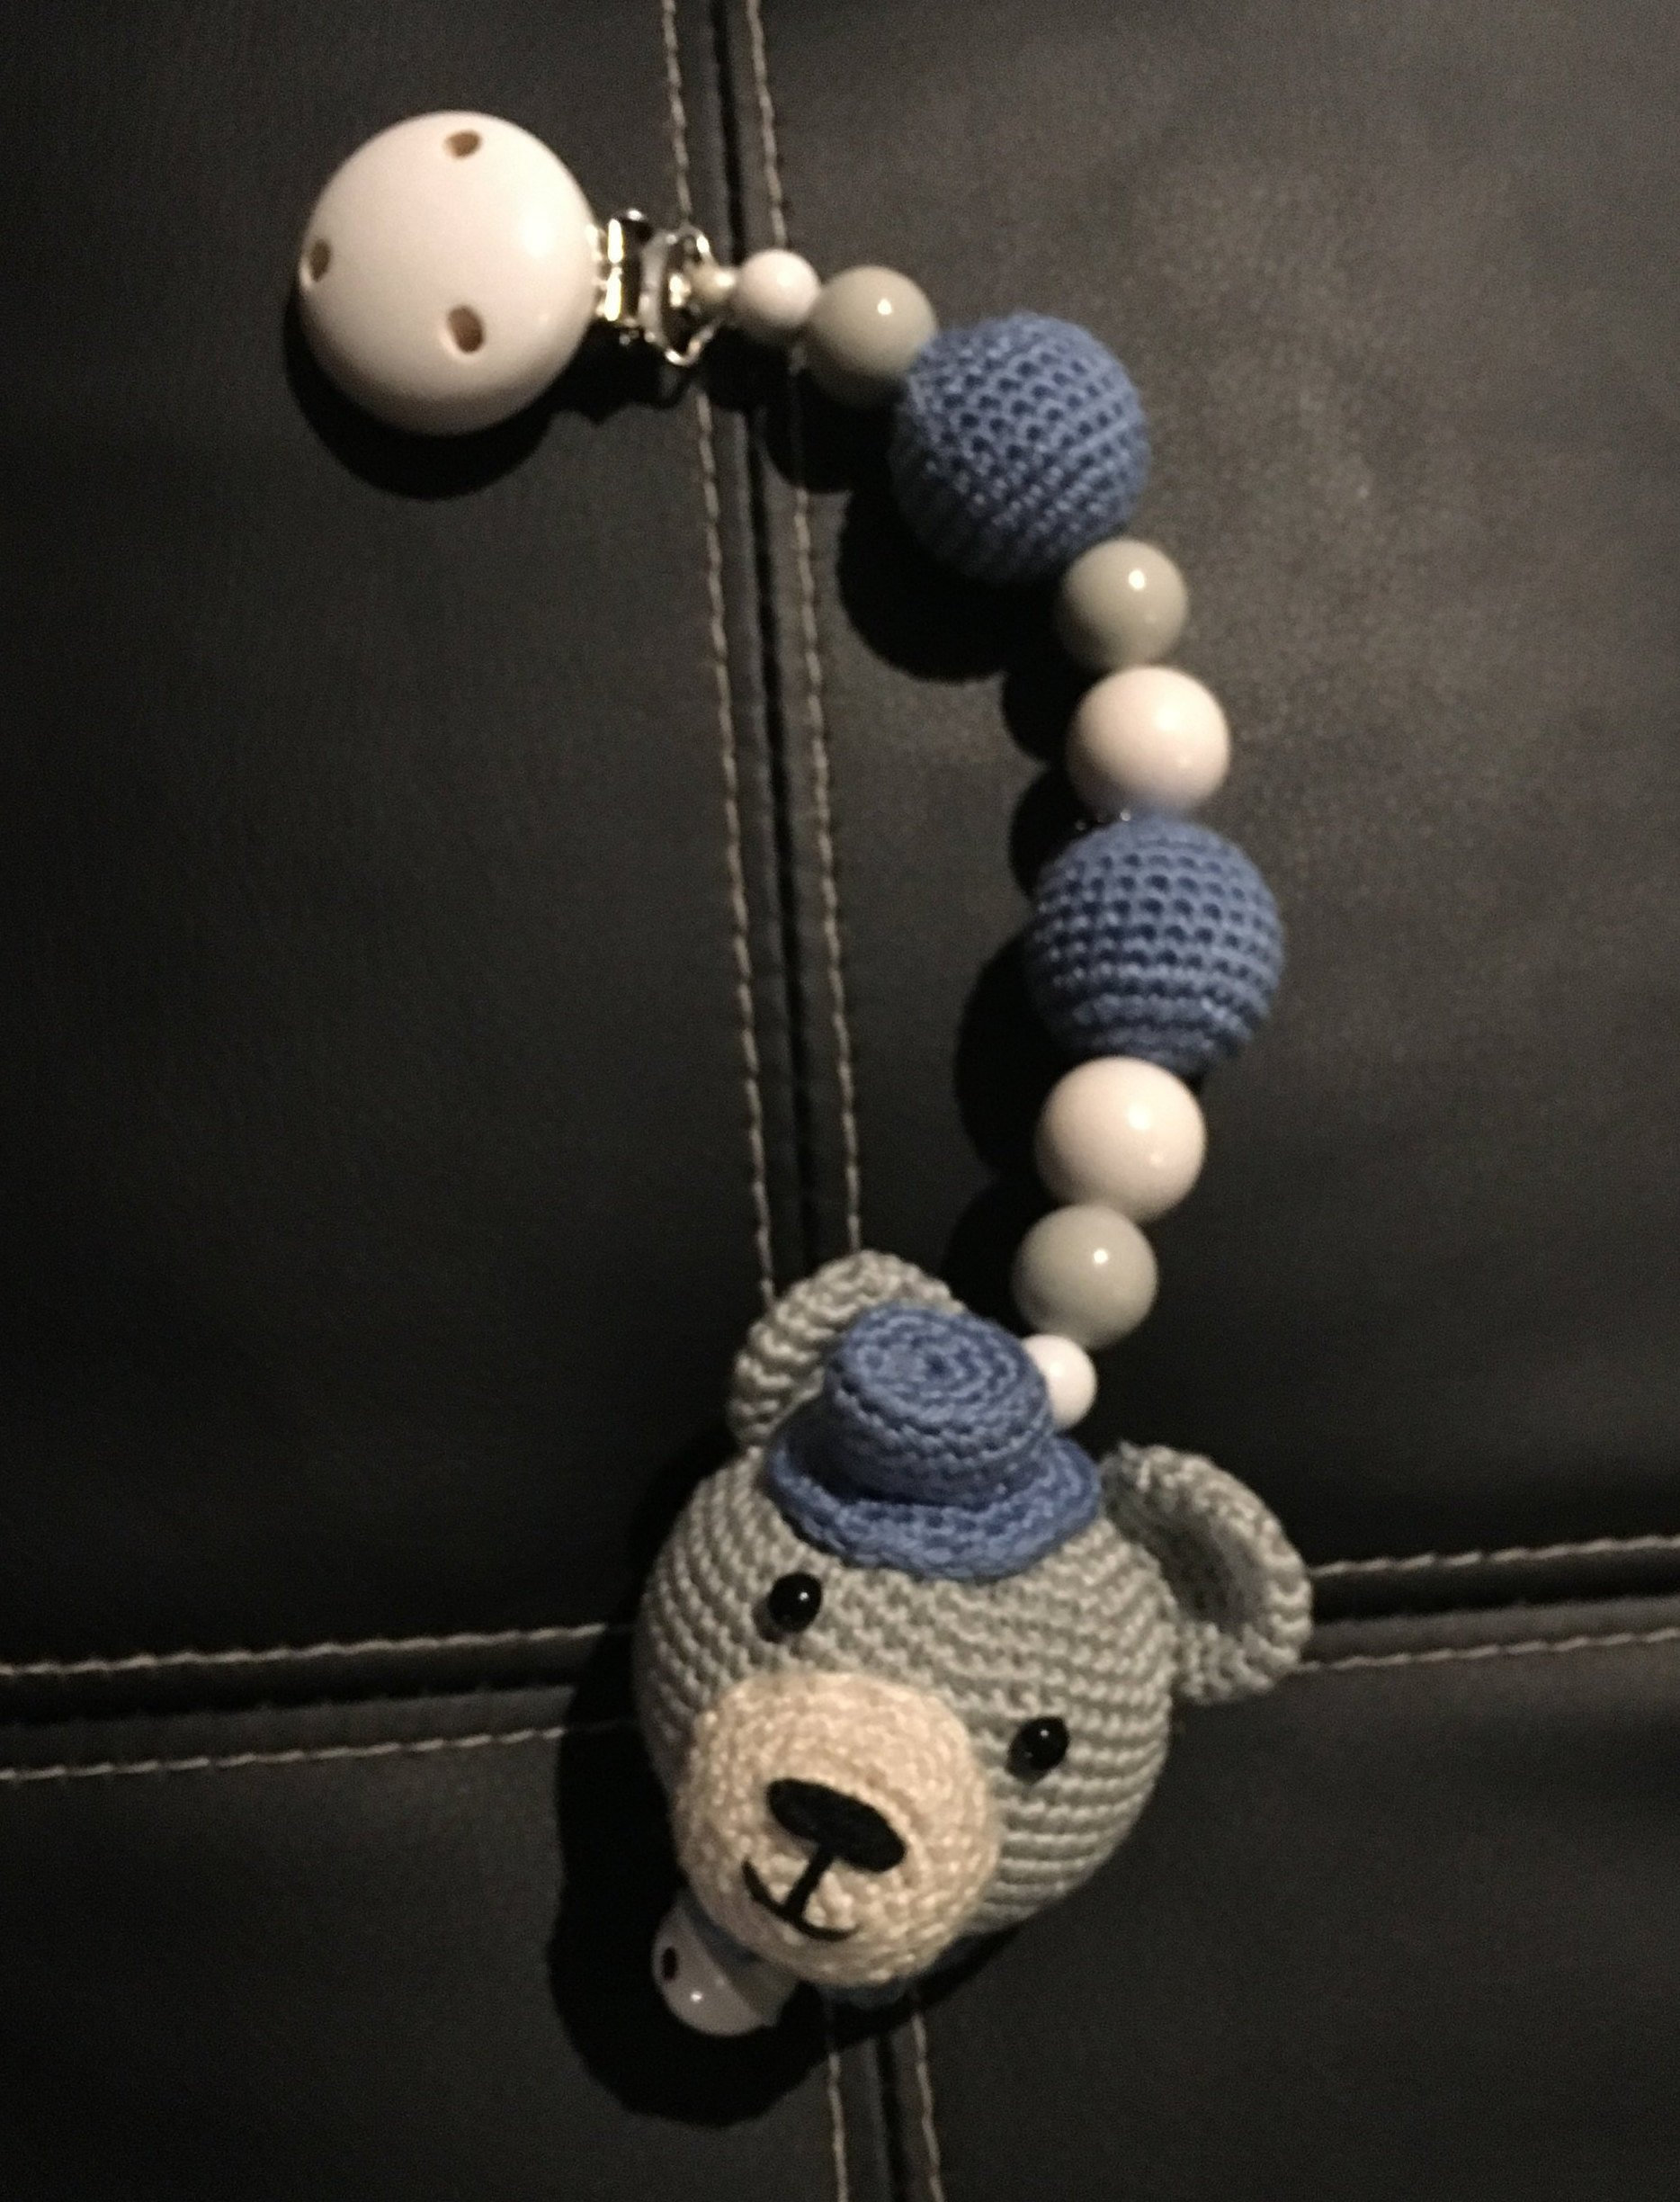 Car seat/stroller crochet Baby-Teddy toy-teething/Wood beats                                                                    Lenascrochetshop         From shop Lenascrochetshop                               5 out of 5 stars                                                                                                                                                                                                                                                          (45)                 45 reviews                                                      CA$46.00                                                                   FREE delivery